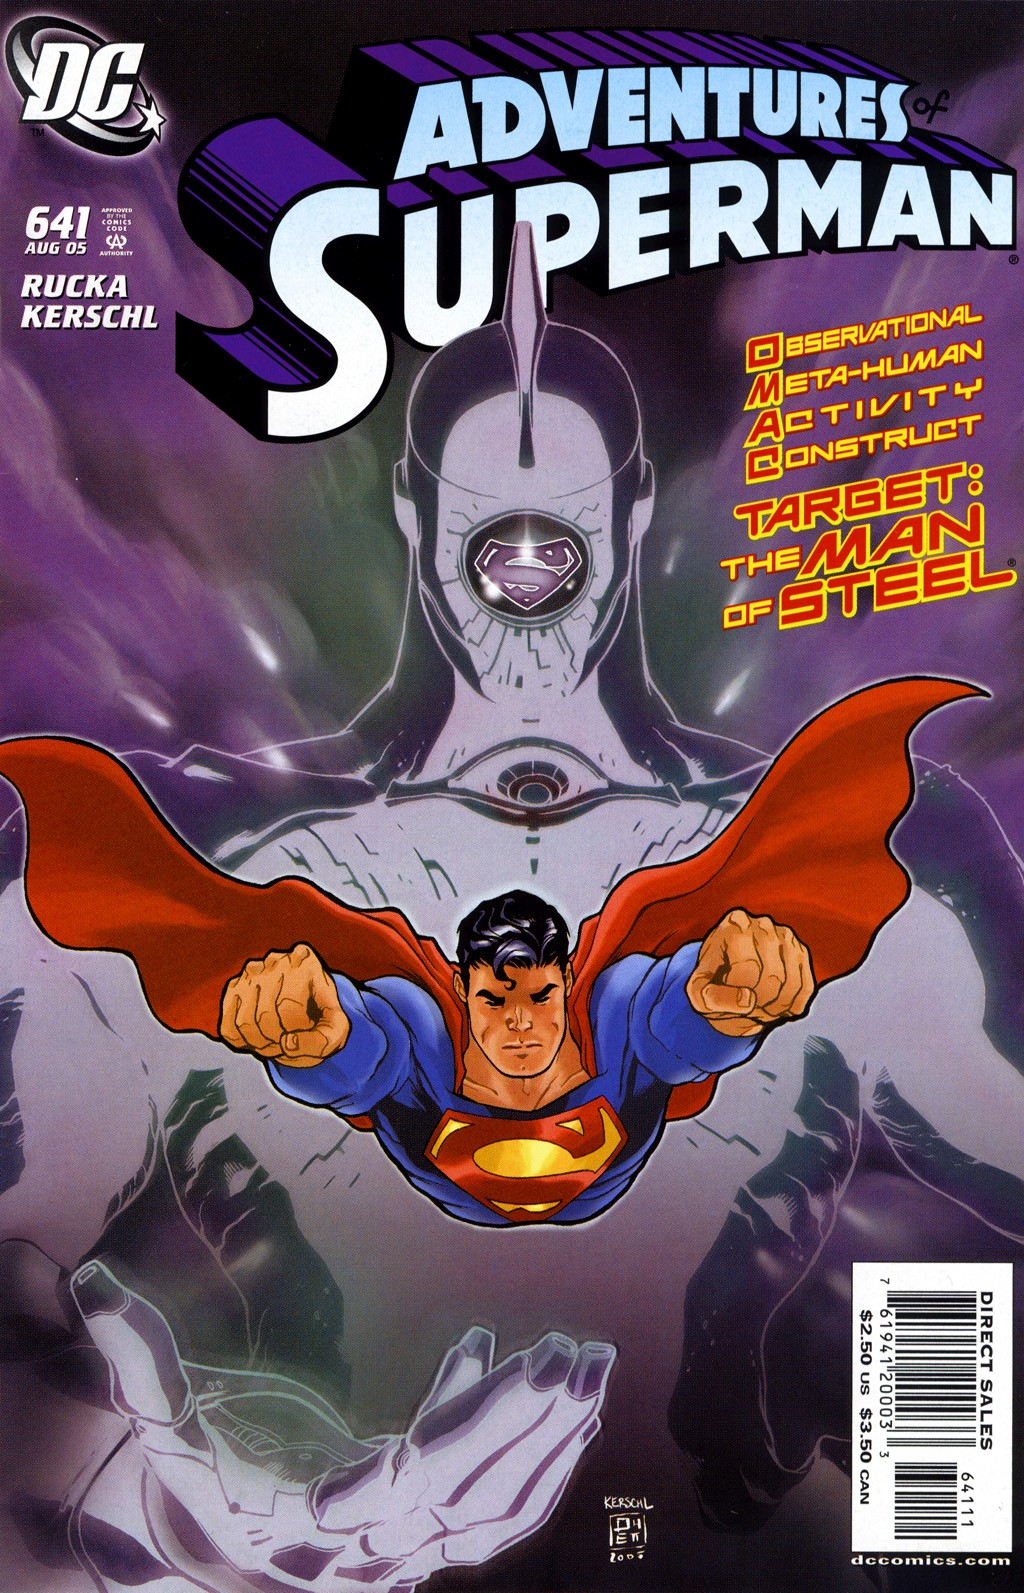 Read online Adventures of Superman (1987) comic -  Issue #641 - 1